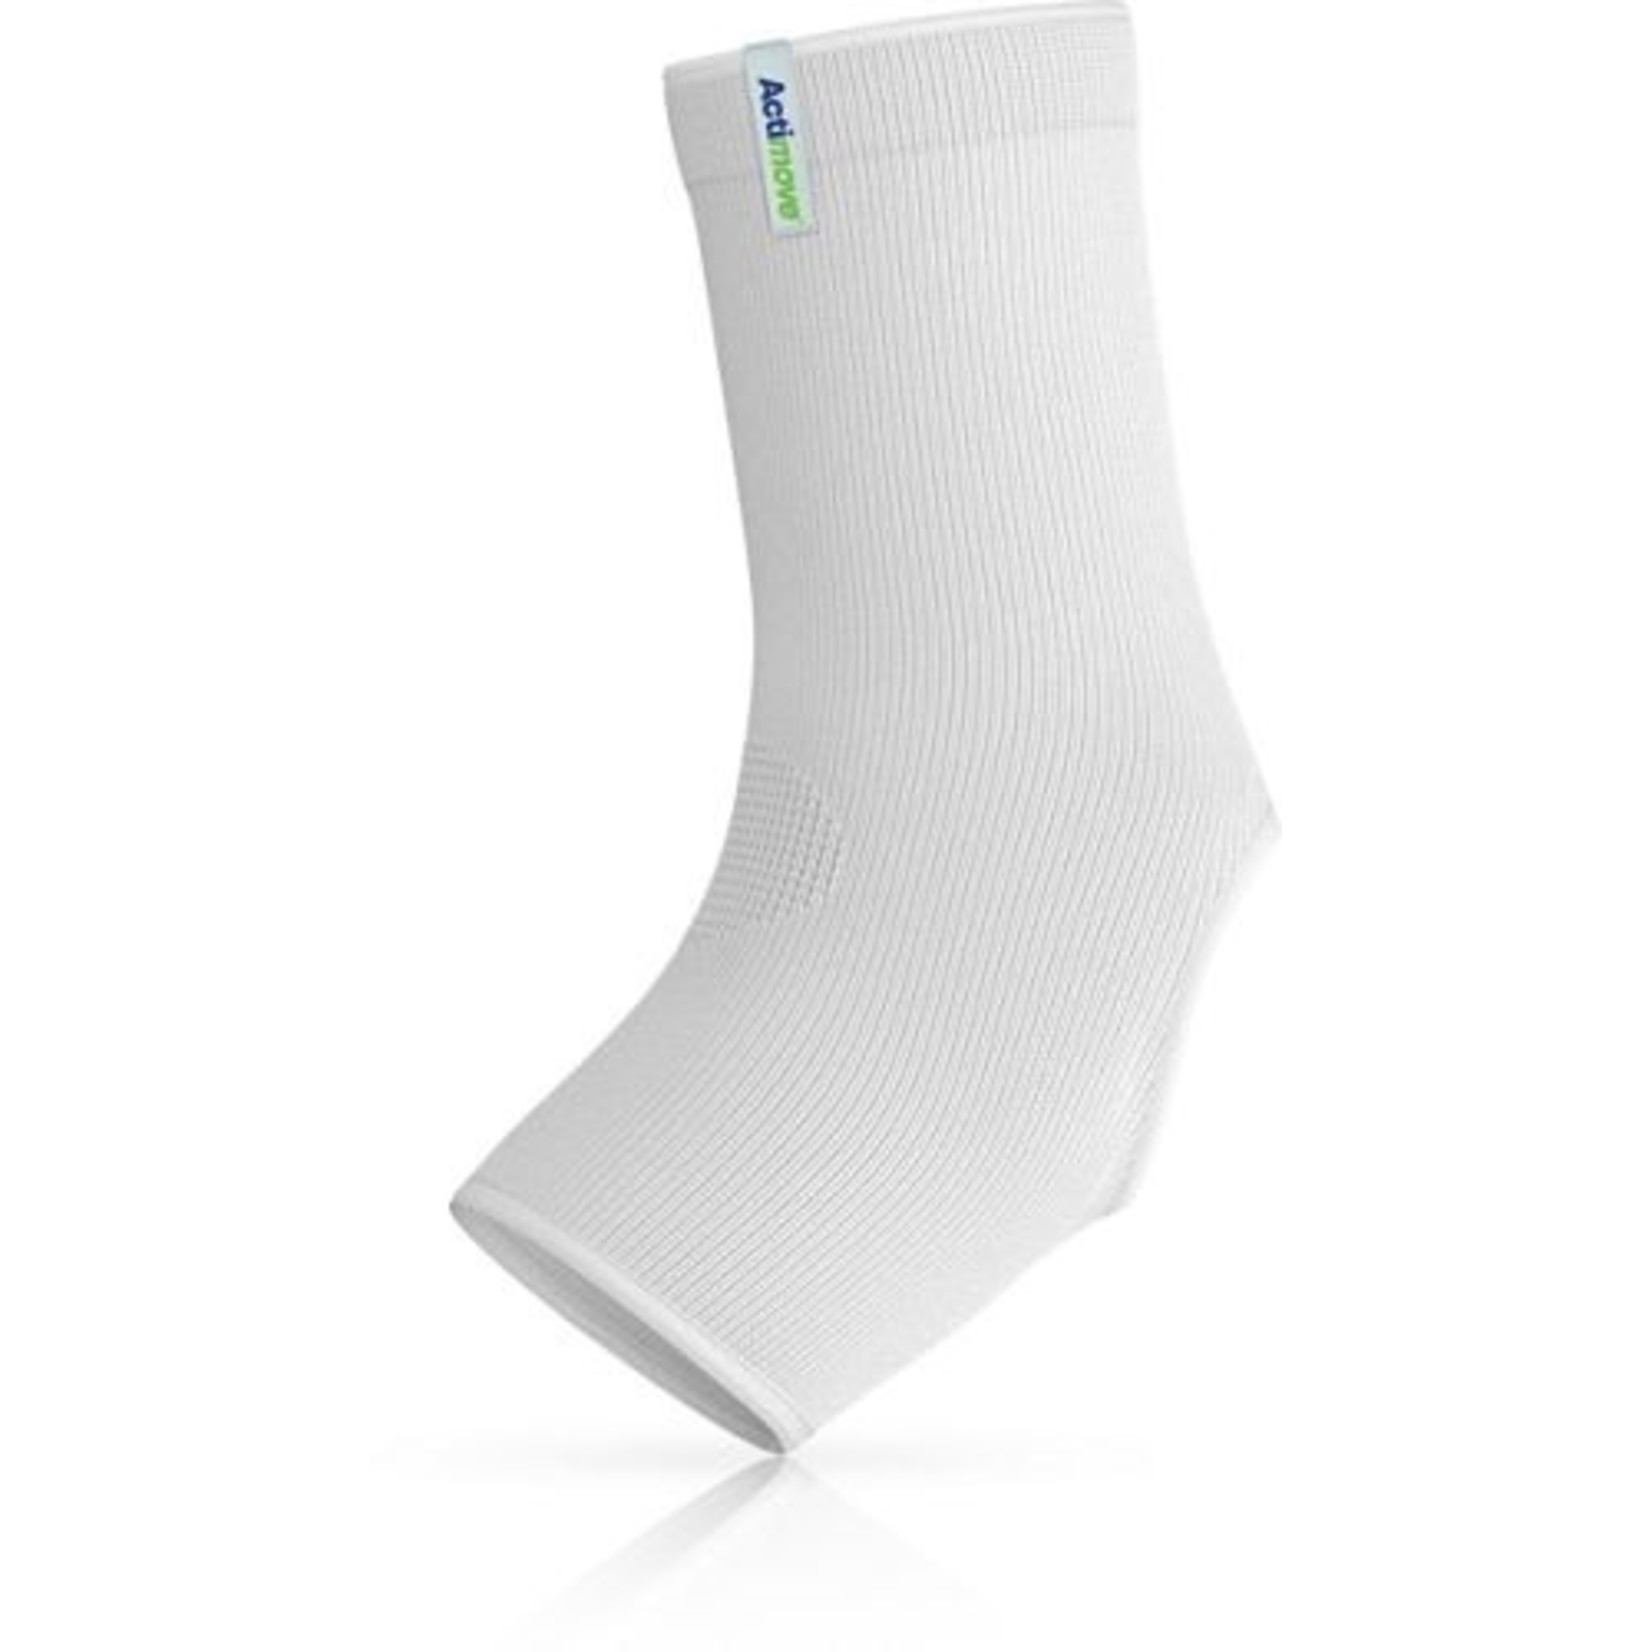 Actimove Actimove Mild Ankle Support